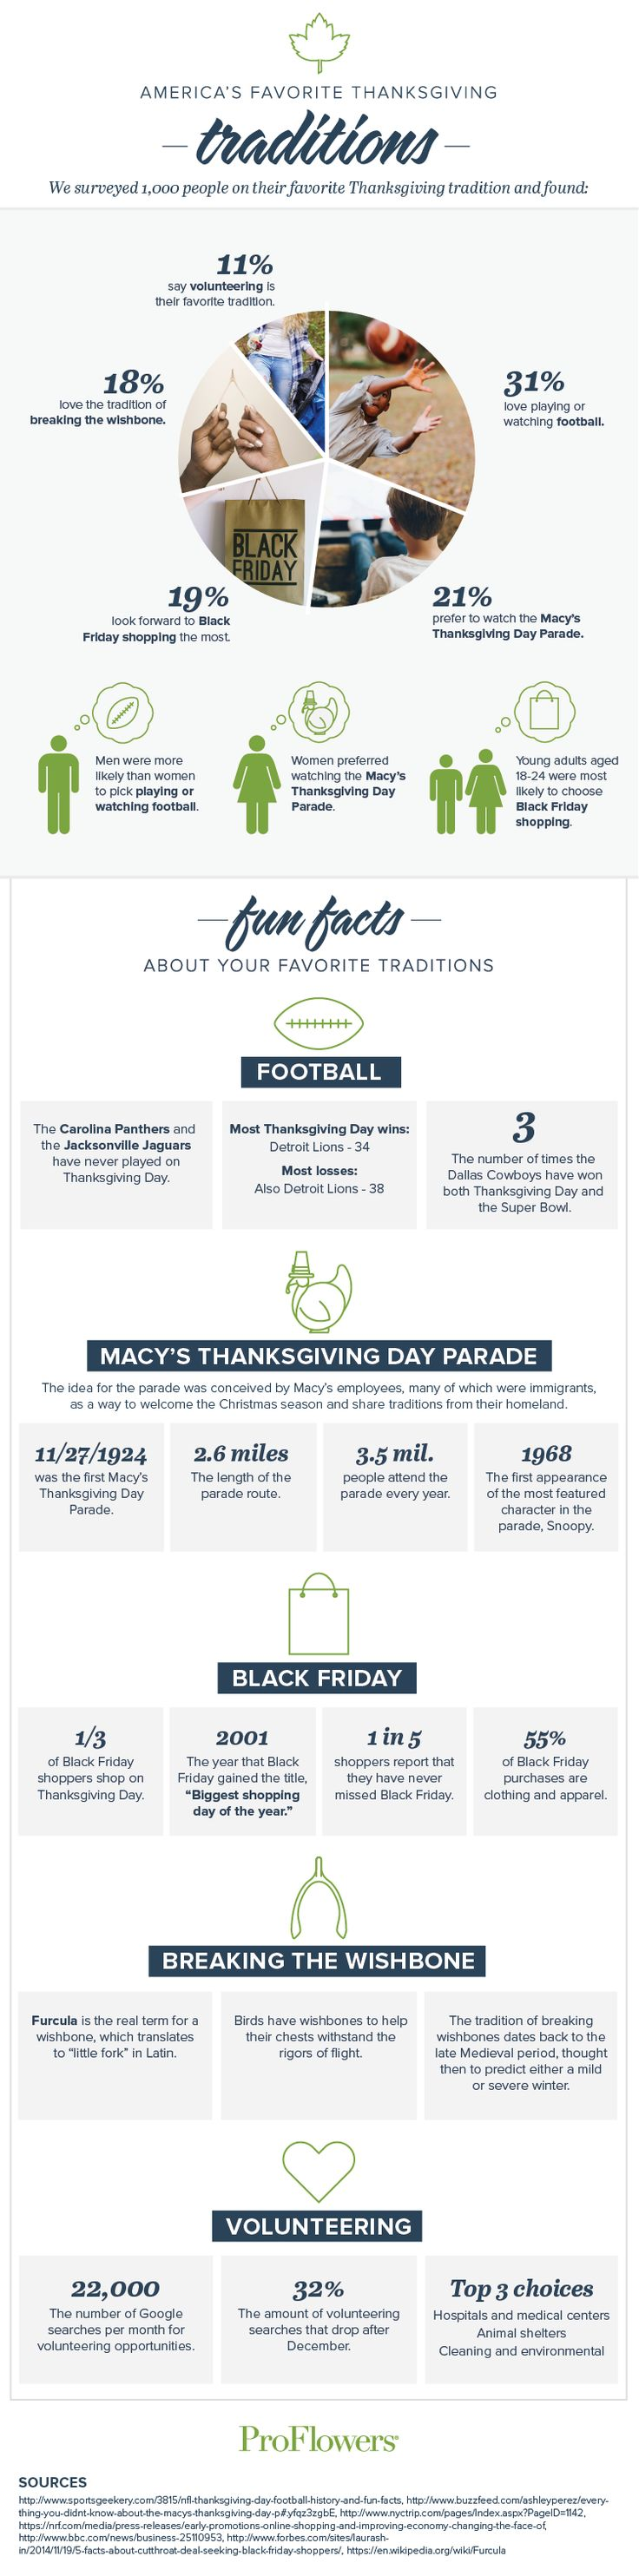 America's favorite Thanksgiving traditions include playing football, watching the Macy's Thanksgiving Day Parade and going Black Friday shopping. Read more!